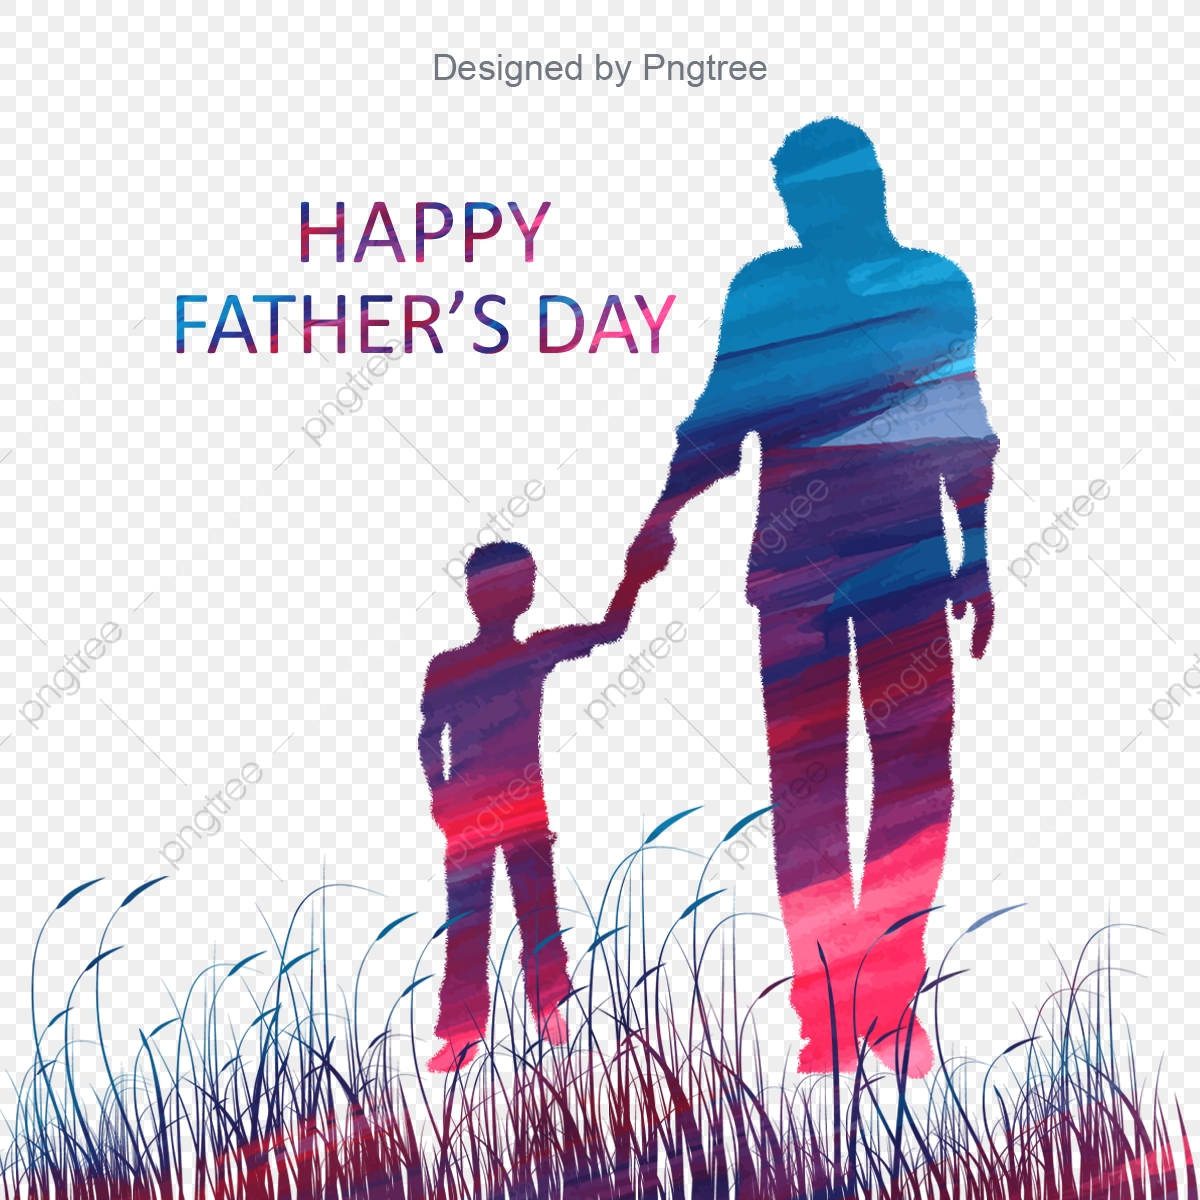 hight resolution of commercial use resource upgrade to premium plan and get license authorization upgradenow happy father s day